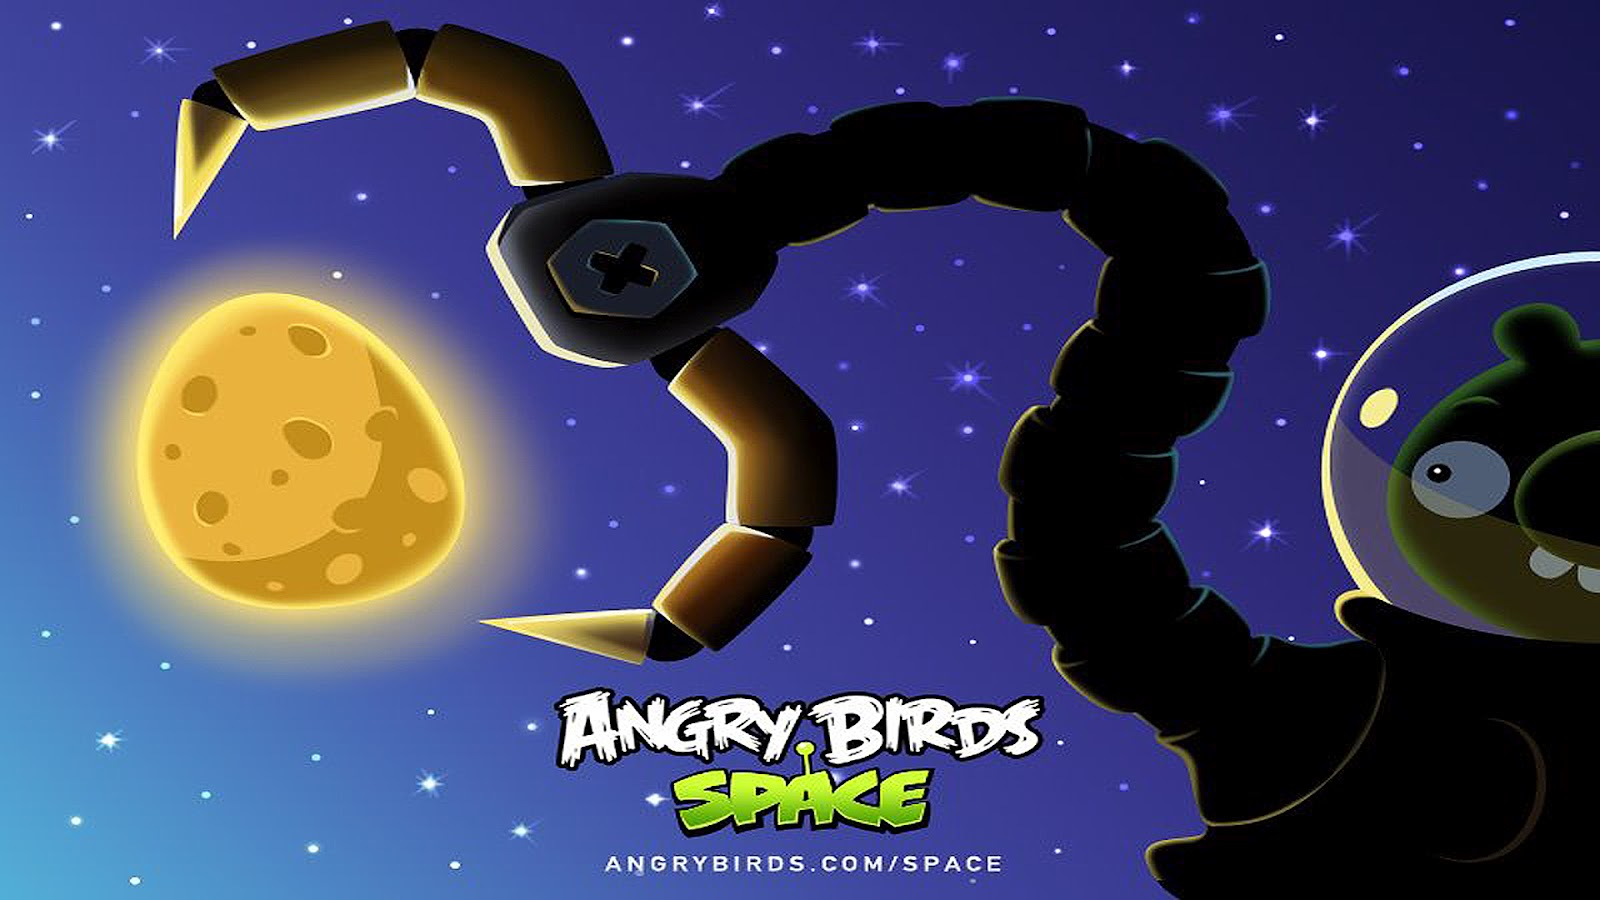 ANGRY BIRDS SPACE HD WALLPAPERS ~ HD WALLPAPERS